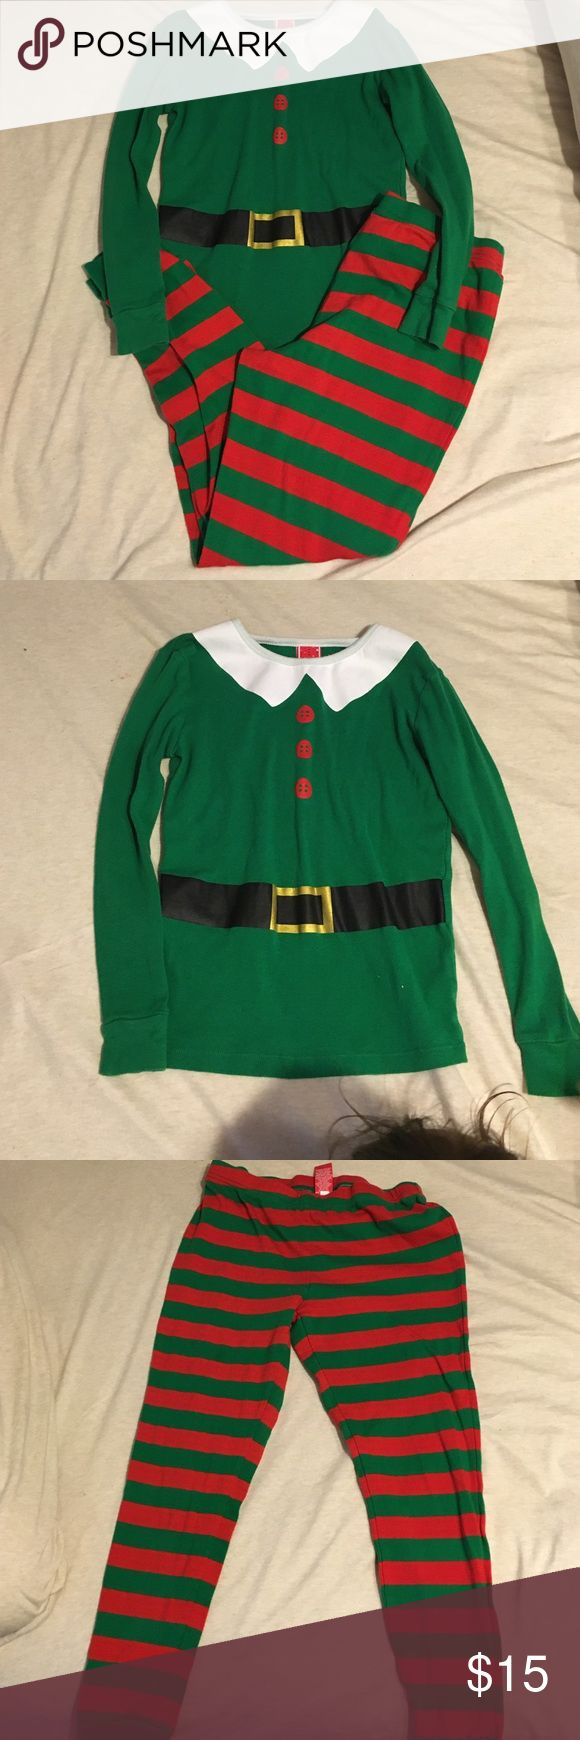 ELF Pajamas Pre-loved ELF pajamas for the Holidays! The top is a size 10 and the bottoms are a small. Target Pajamas Pajama Sets